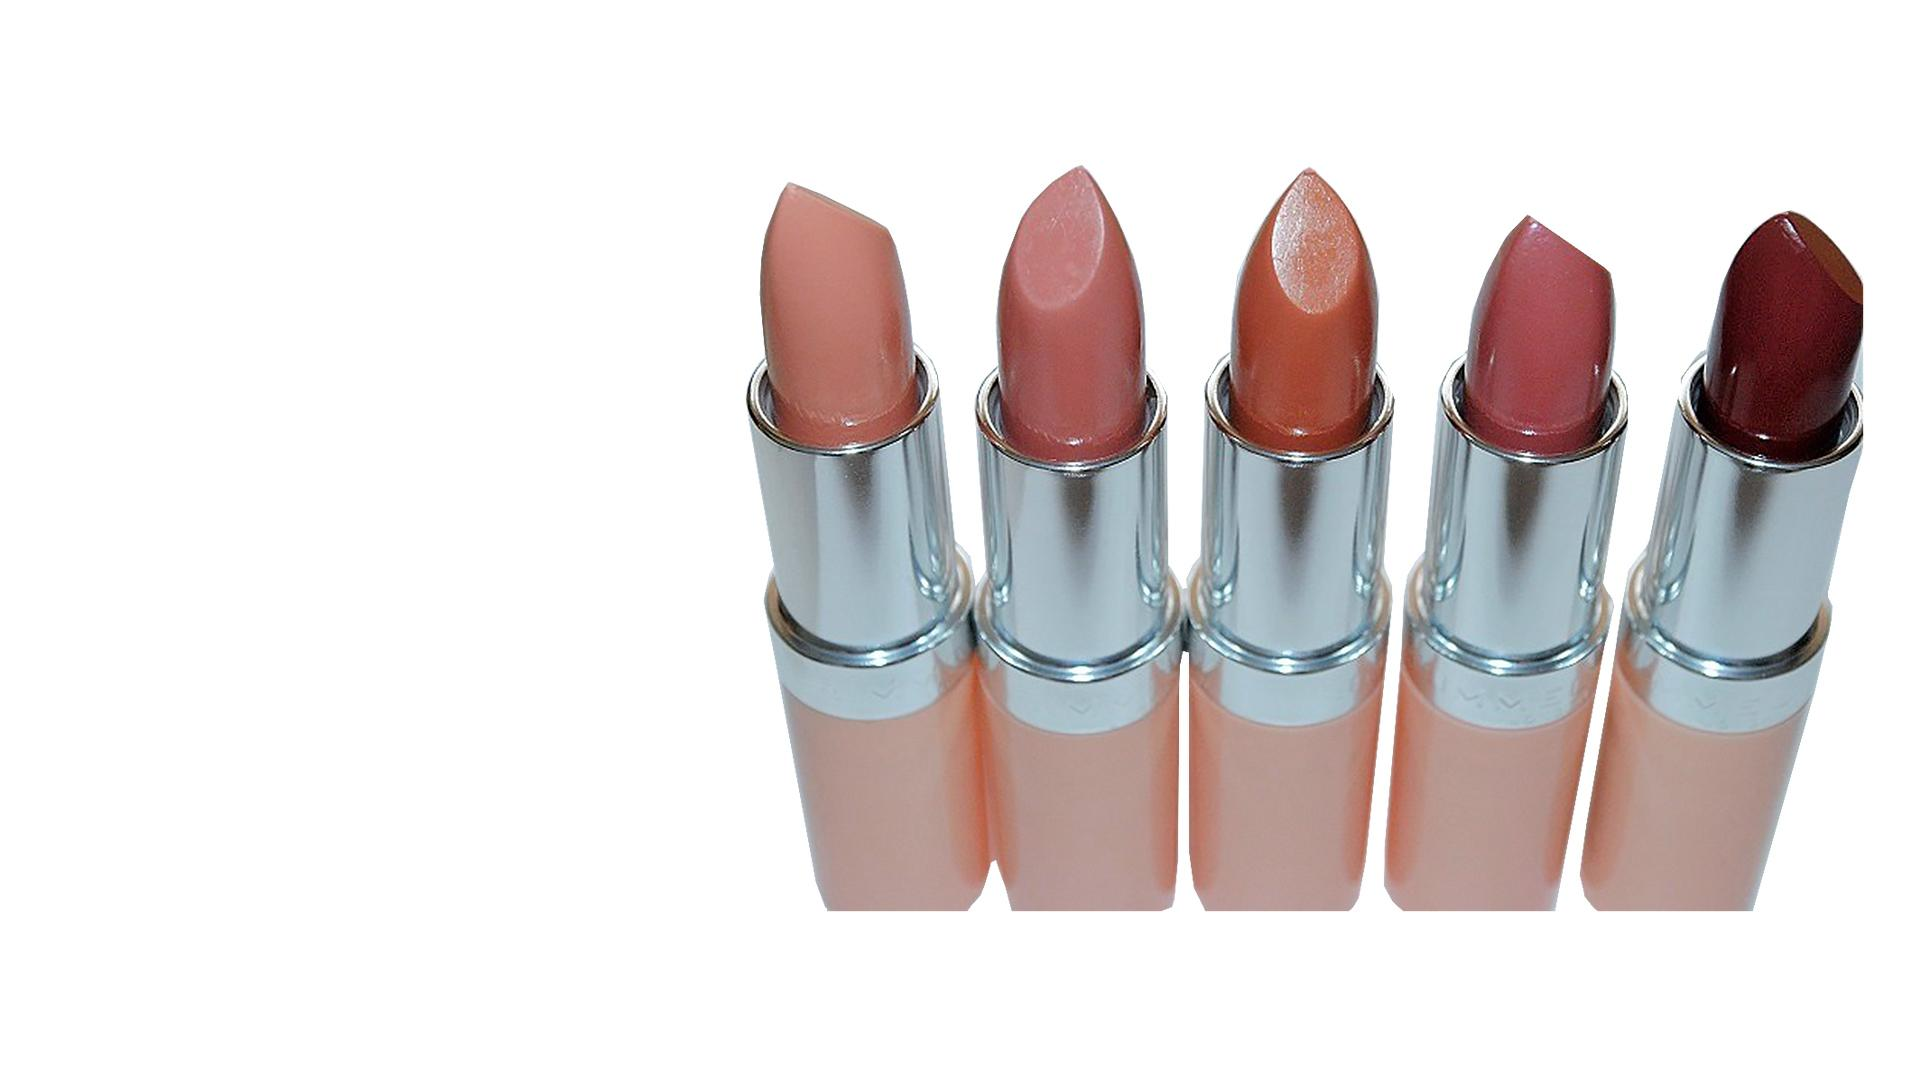 Kate Nudes Lipstick - HelloOctoberXo - Drugstore Make Up Hype